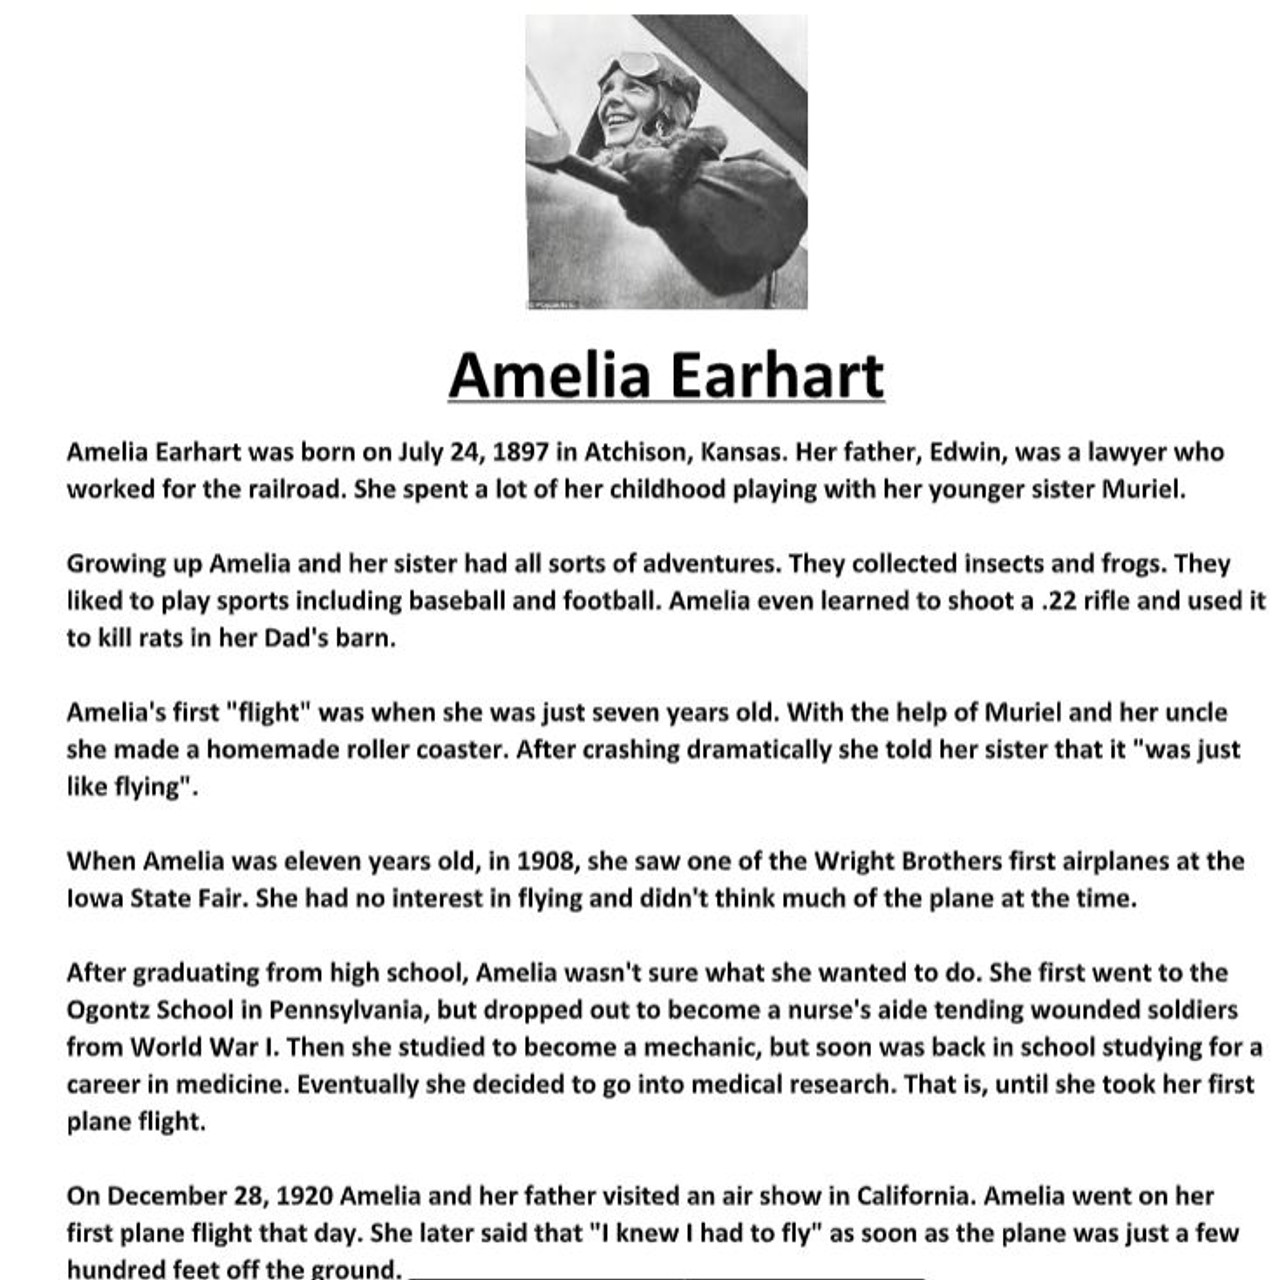 Amelia Earhart Biography and Assignment Worksheet